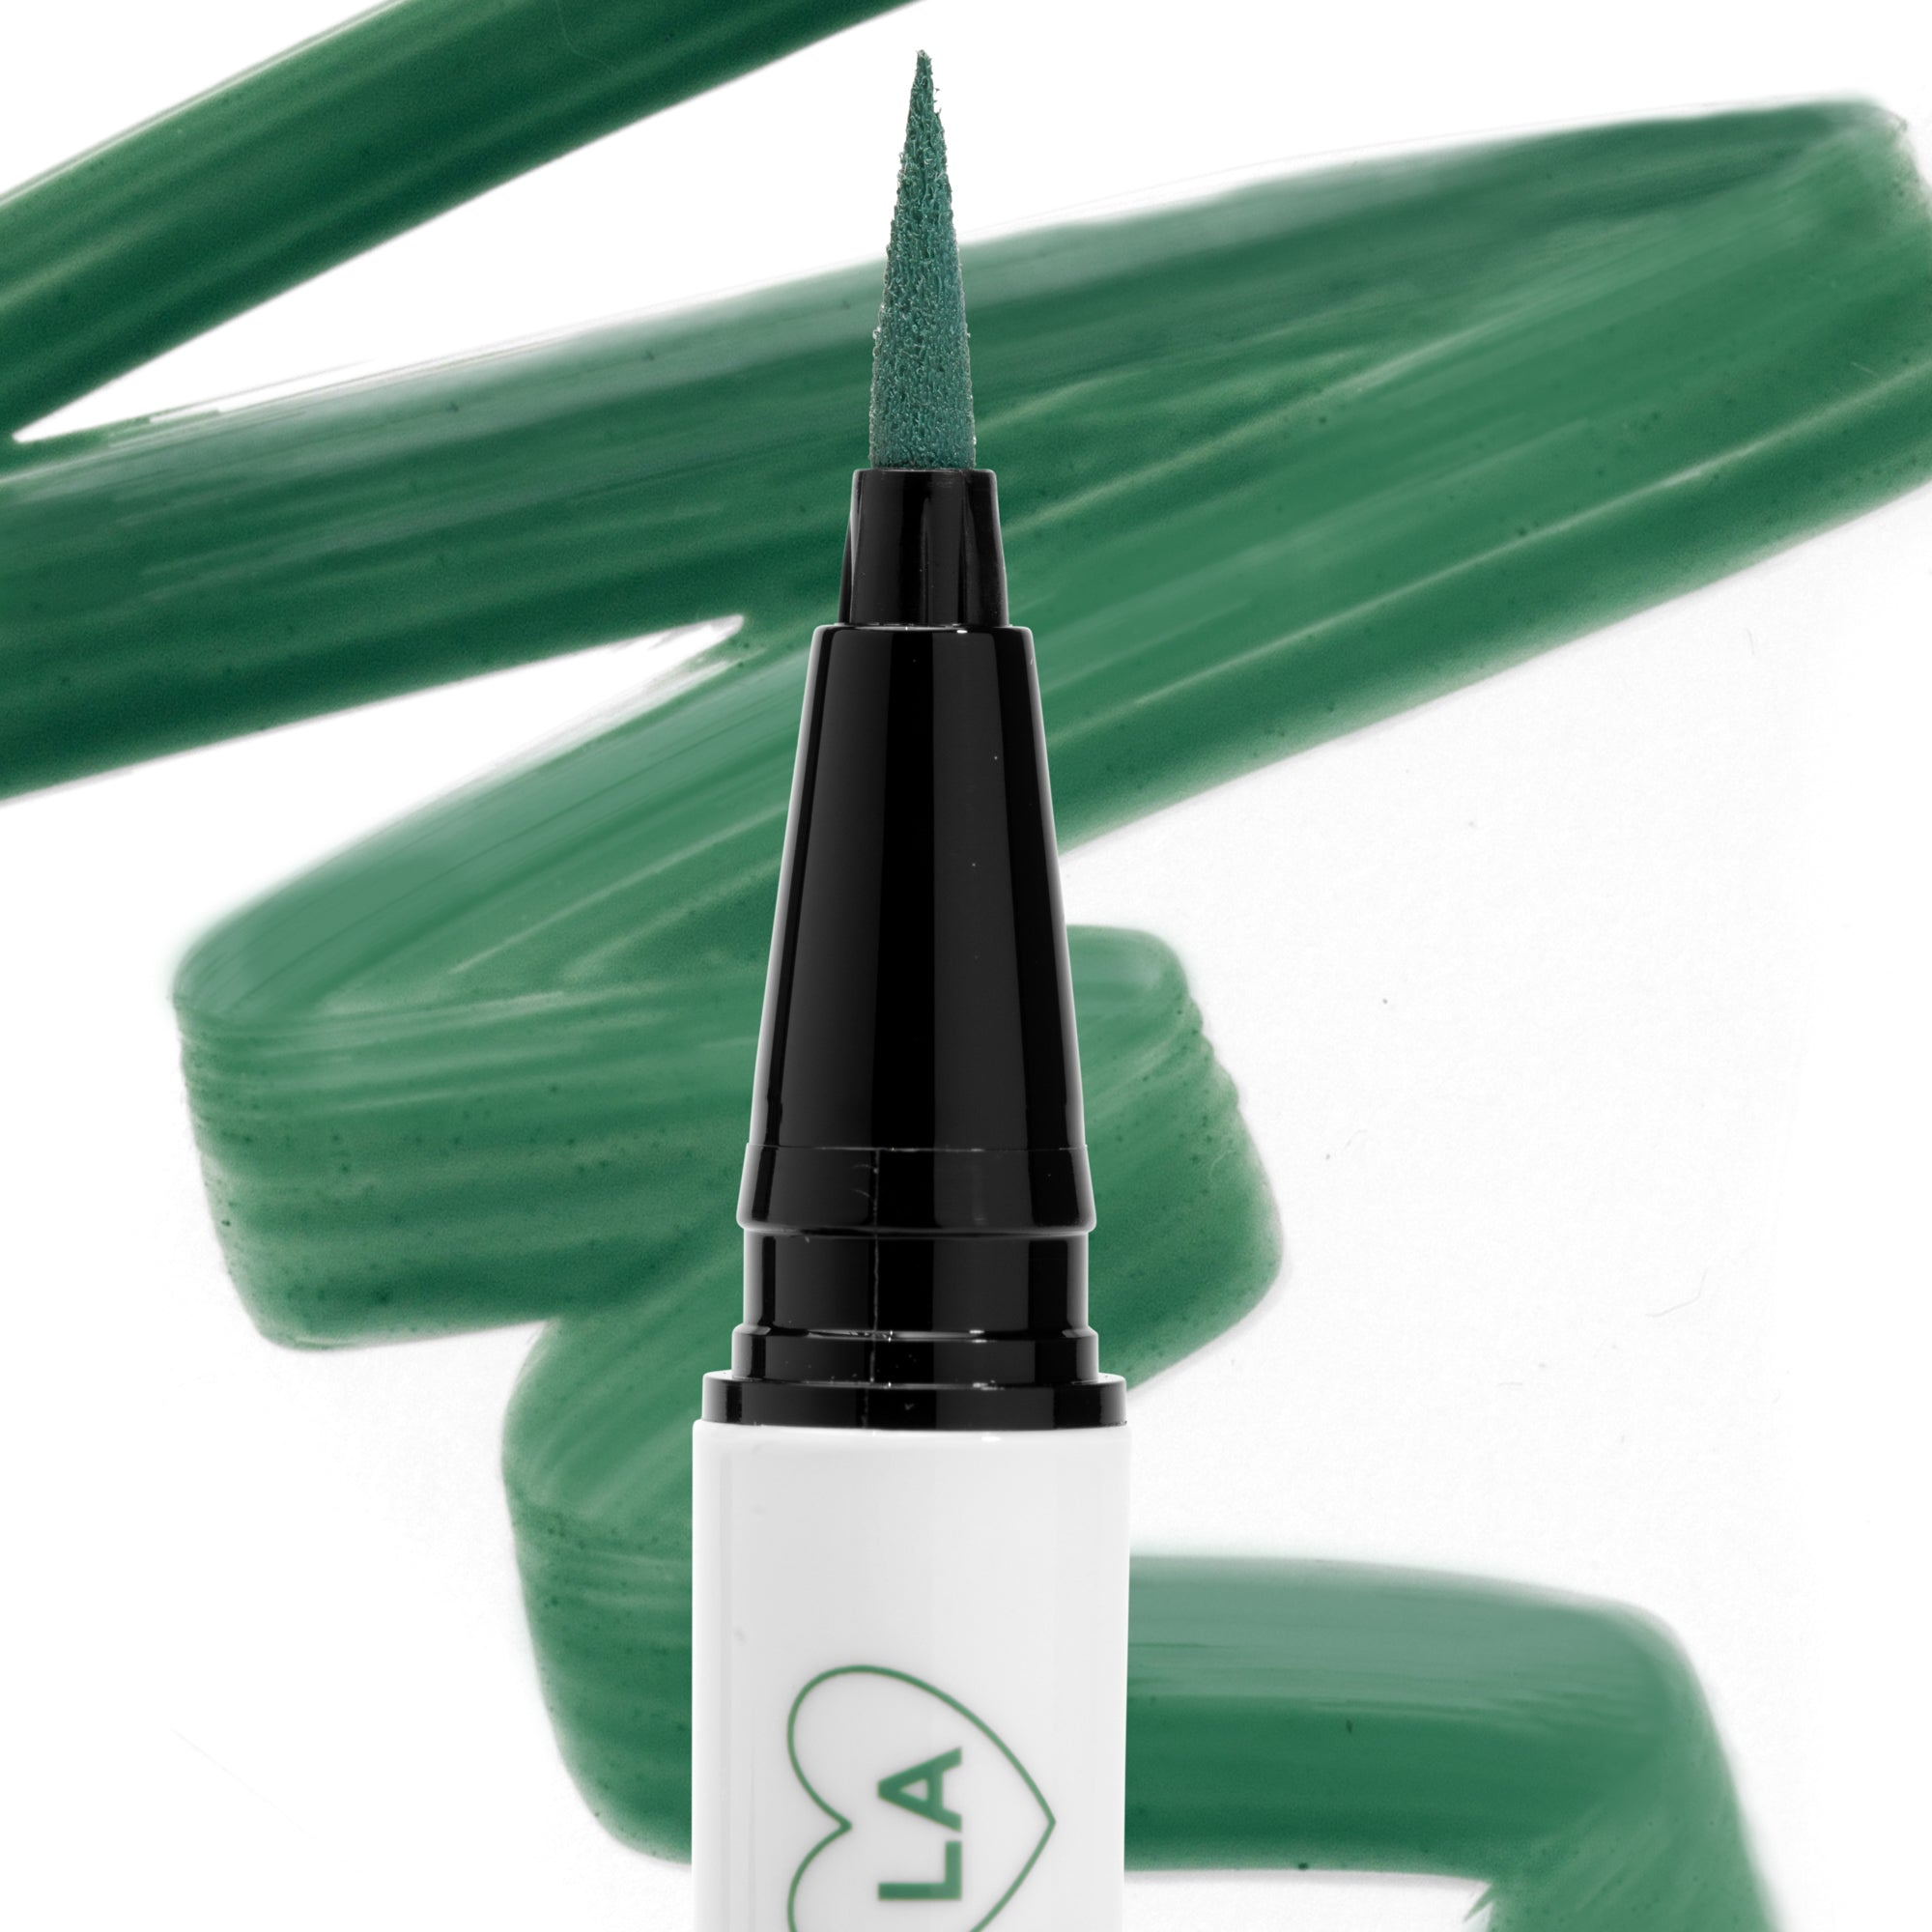 ColourPop BFF Liquid Liner The Hills muted emerald green an ultra-fine felt tip liquid eyeliner that delivers intense pigmentation in one easy swipe